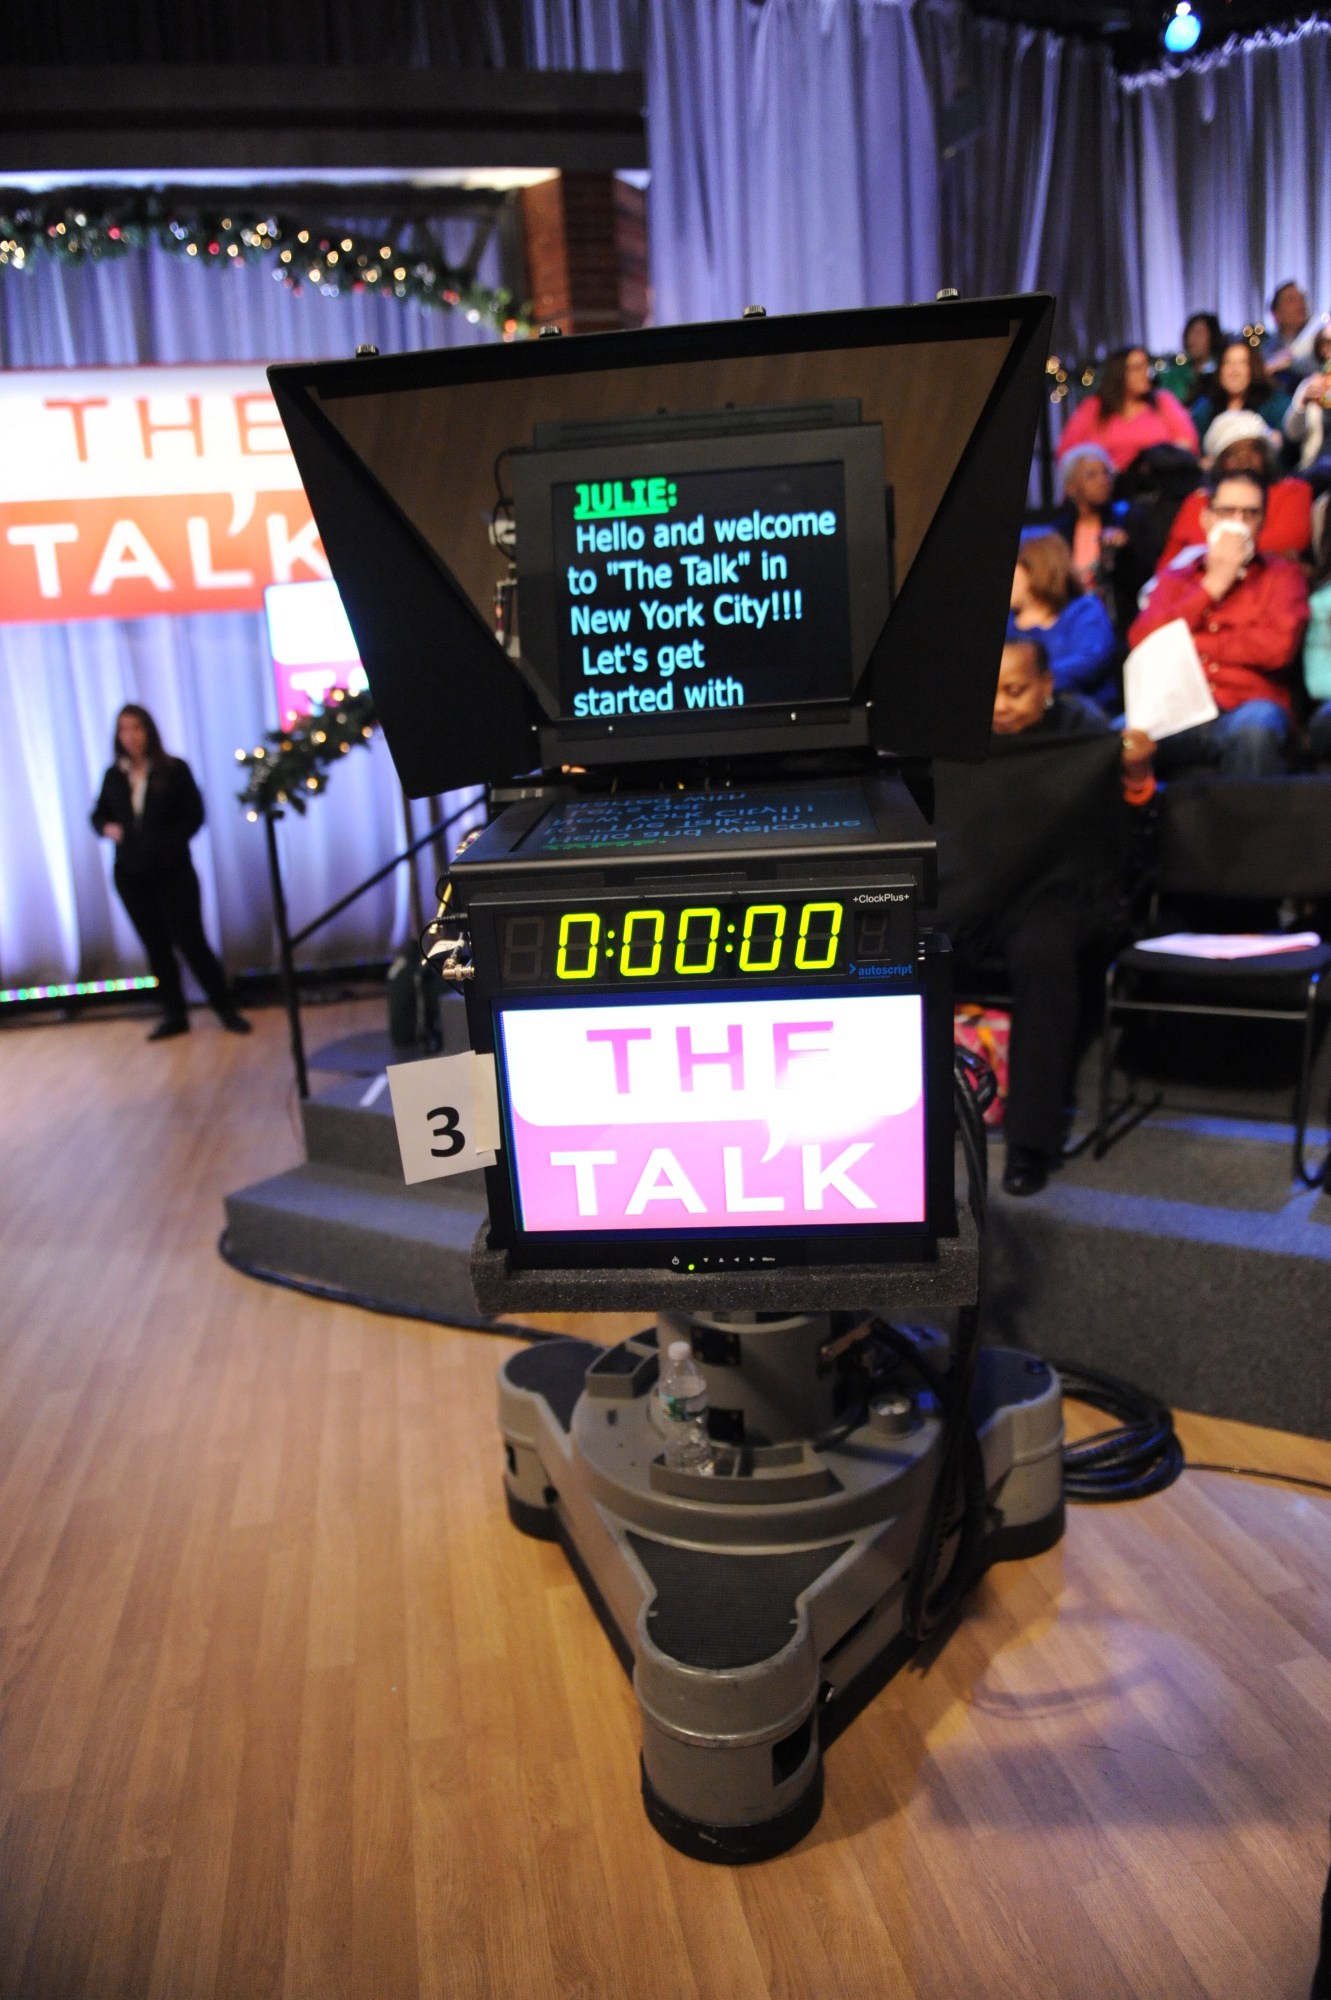 THE TALK In NYC